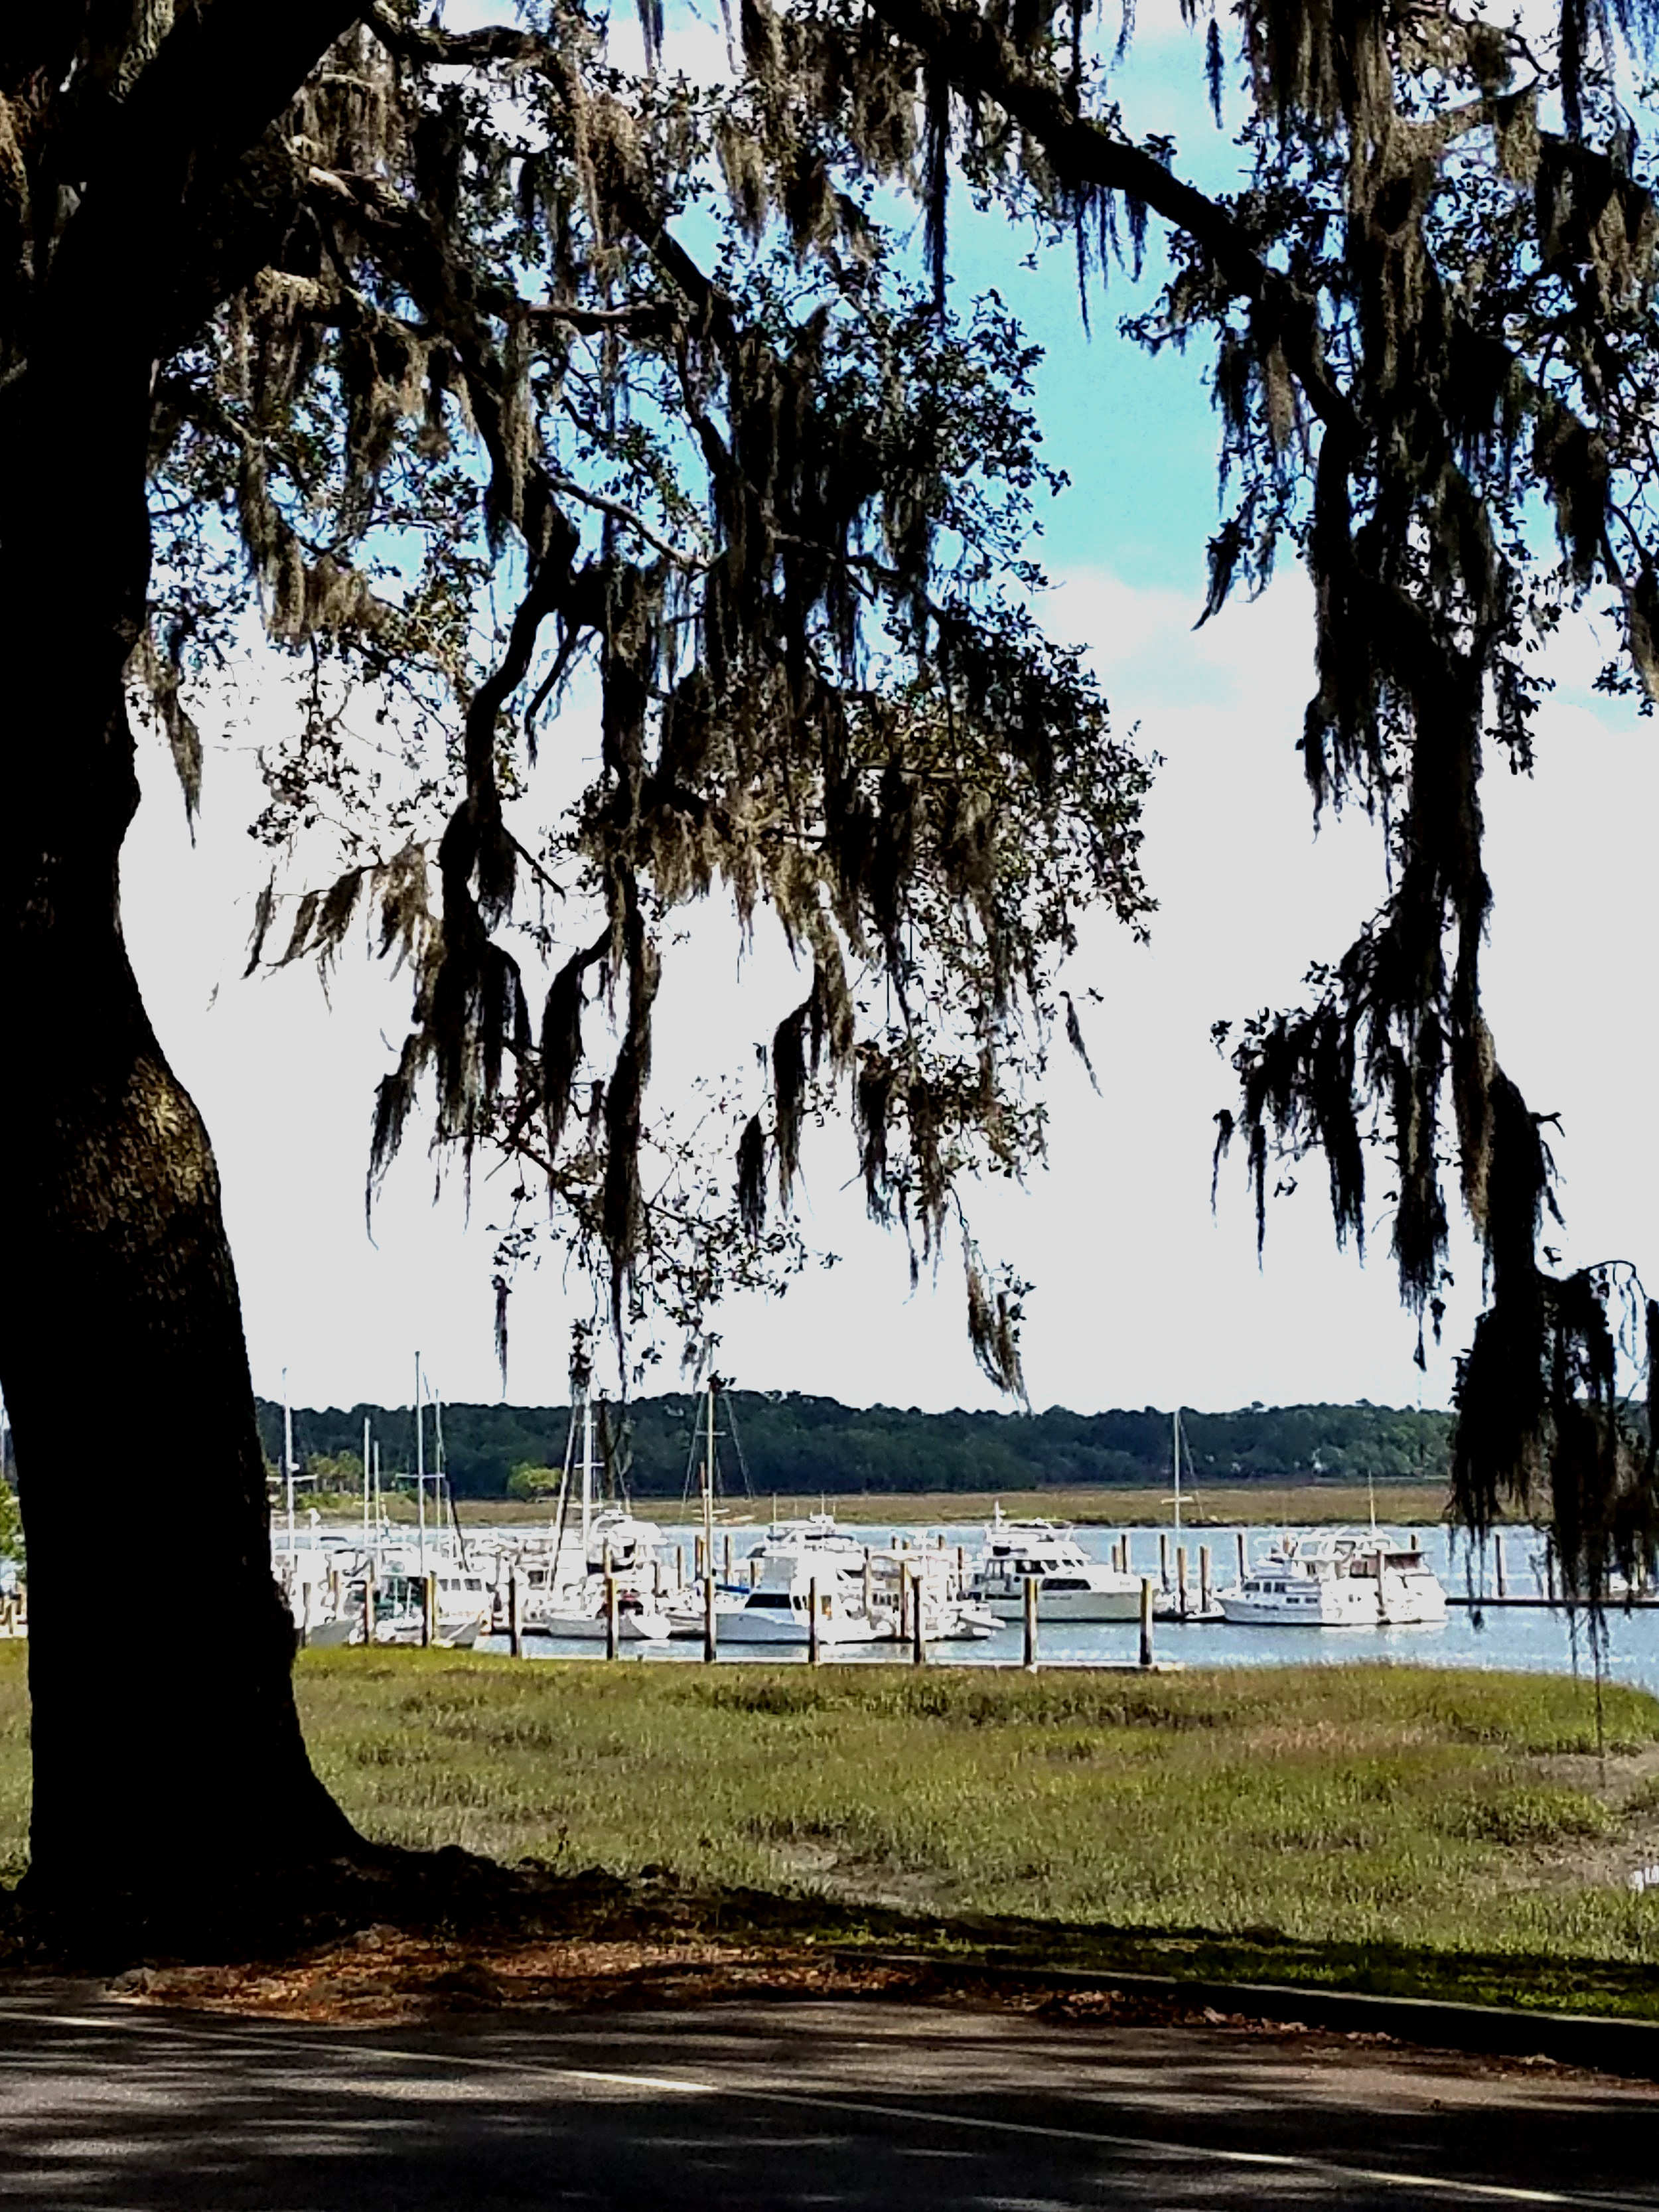 The Downtown Marina at Beaufort is quite lovely